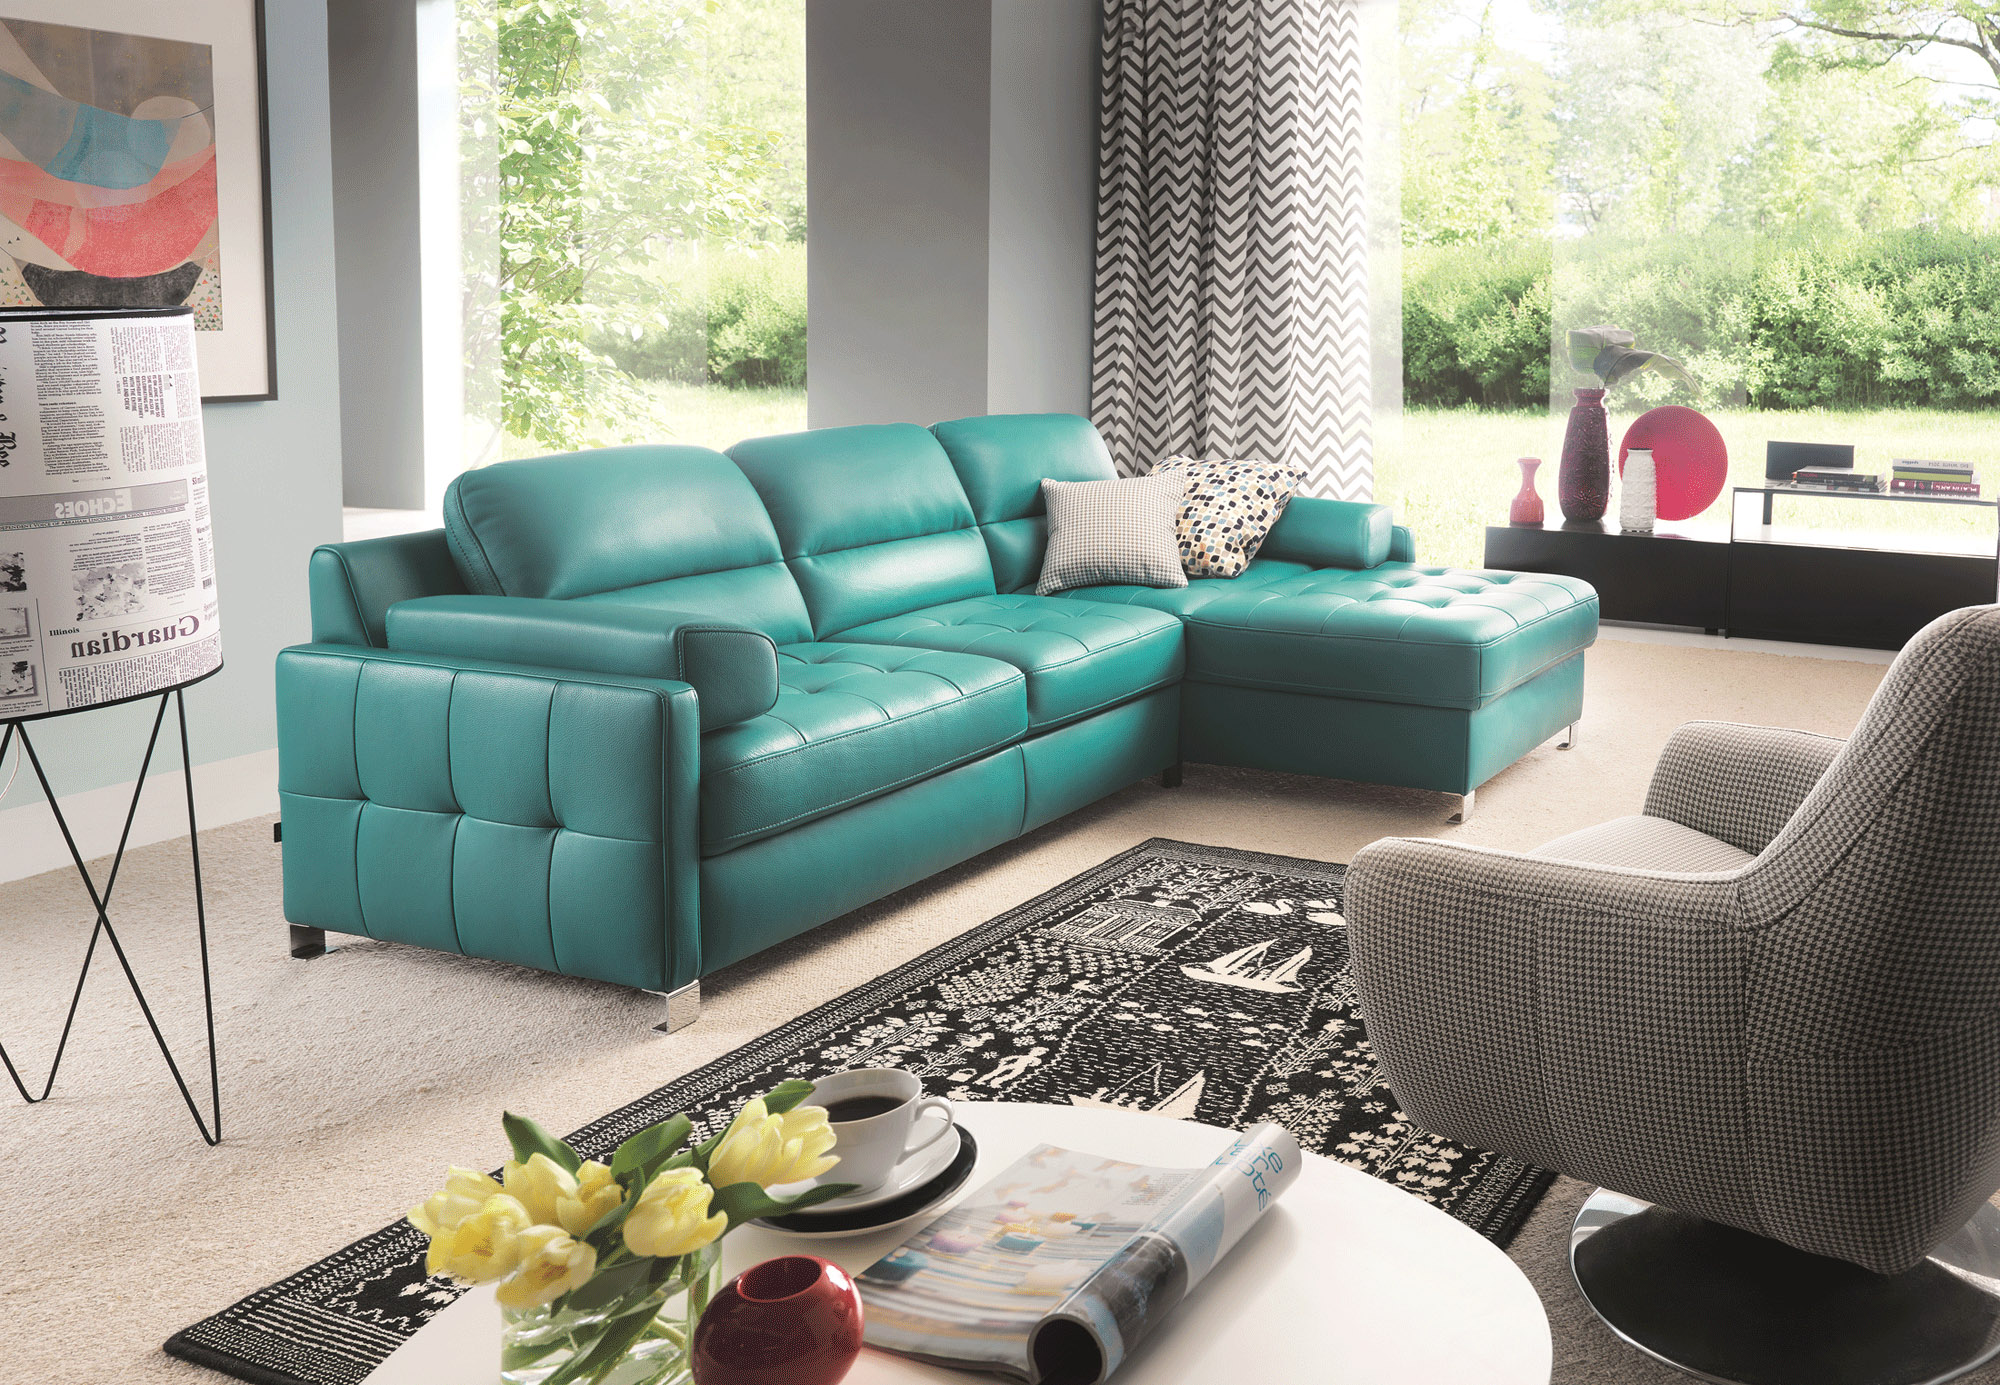 Pleasant Fashionable Tufted Top Grain Leather Sectional Interior Design Ideas Helimdqseriescom